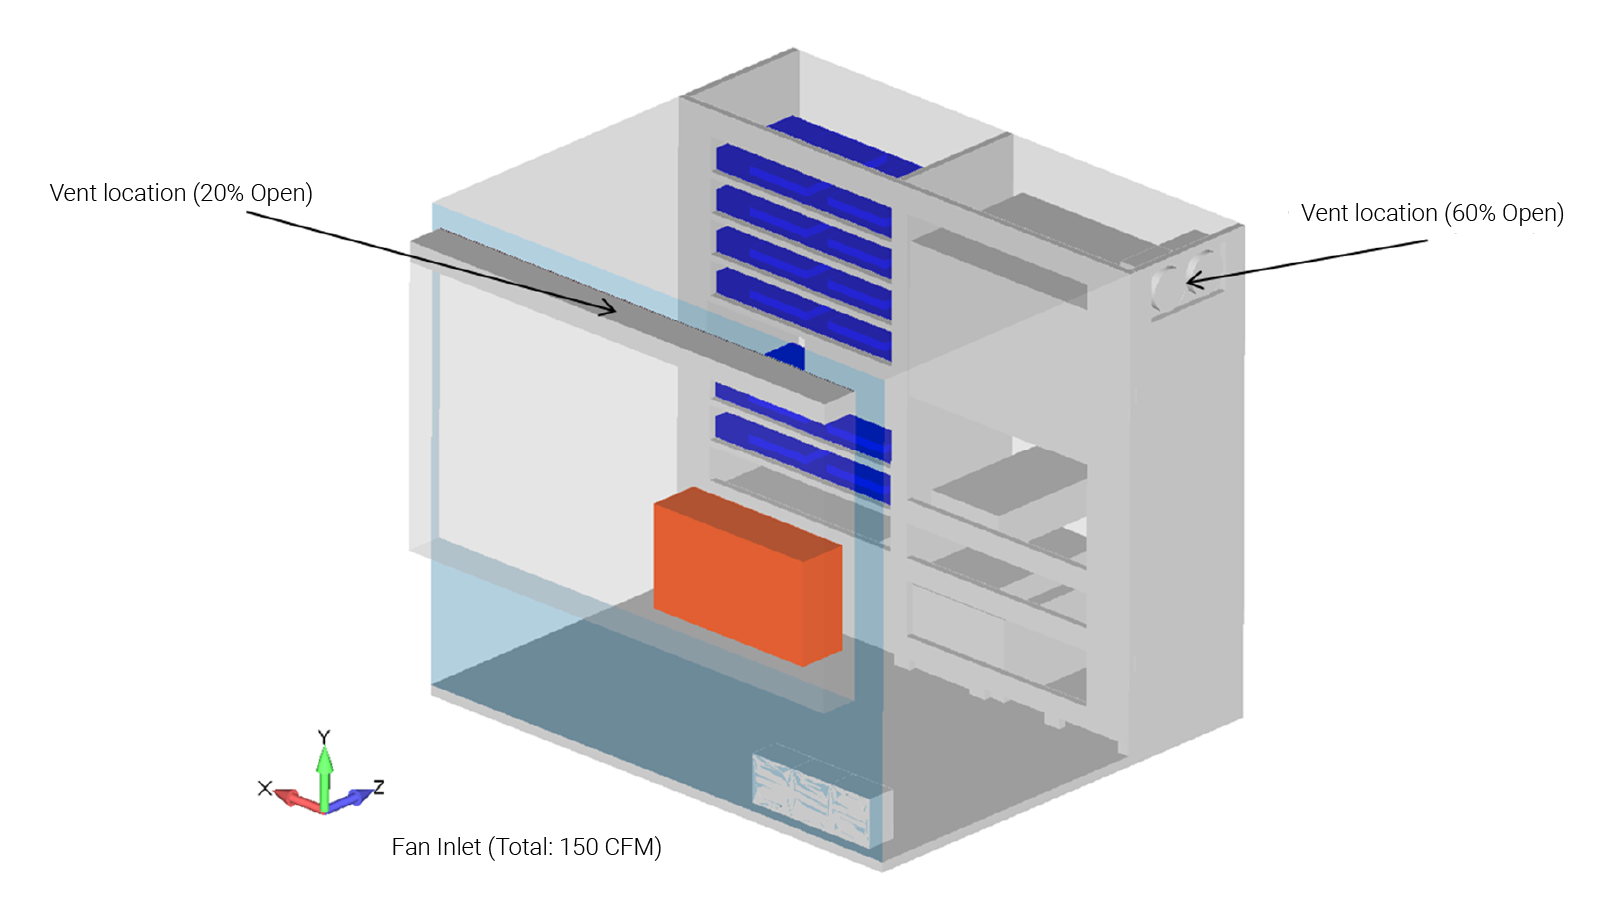 Starting geometry for CFD analysis showing inlets and fan location